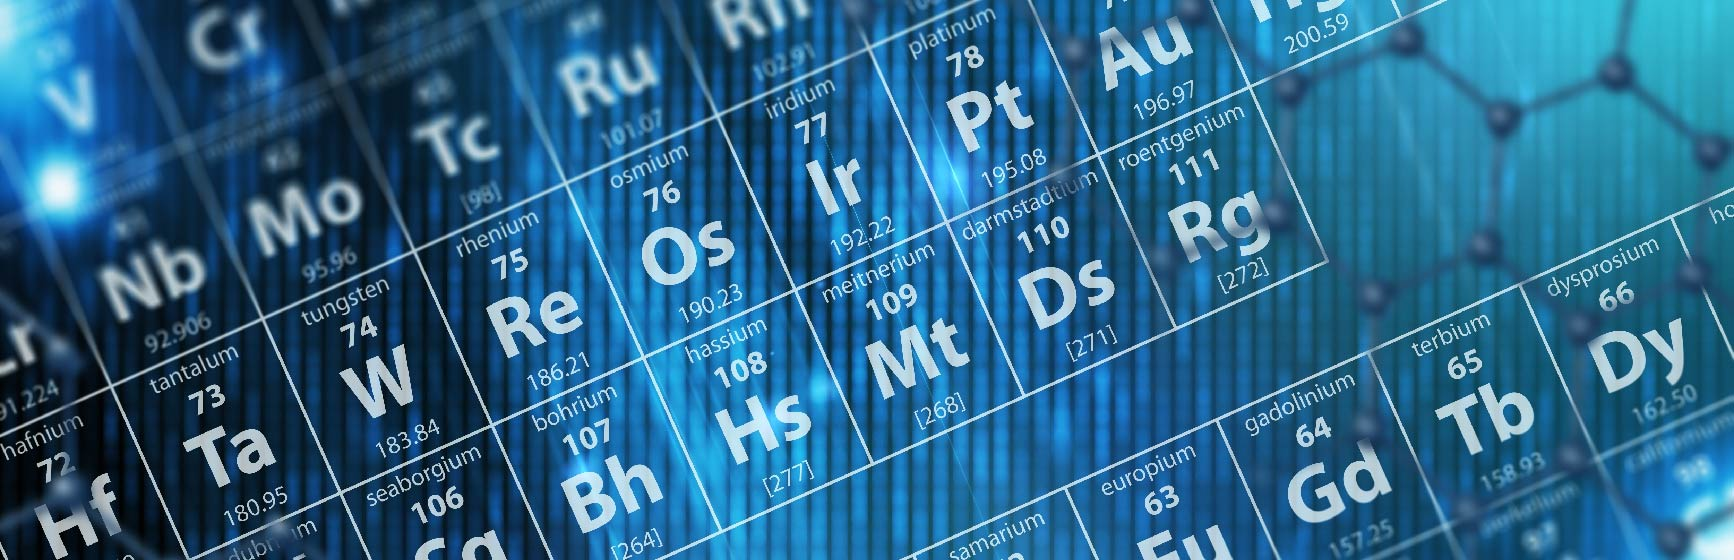 New Service – Toxic Metals and Elements Panel